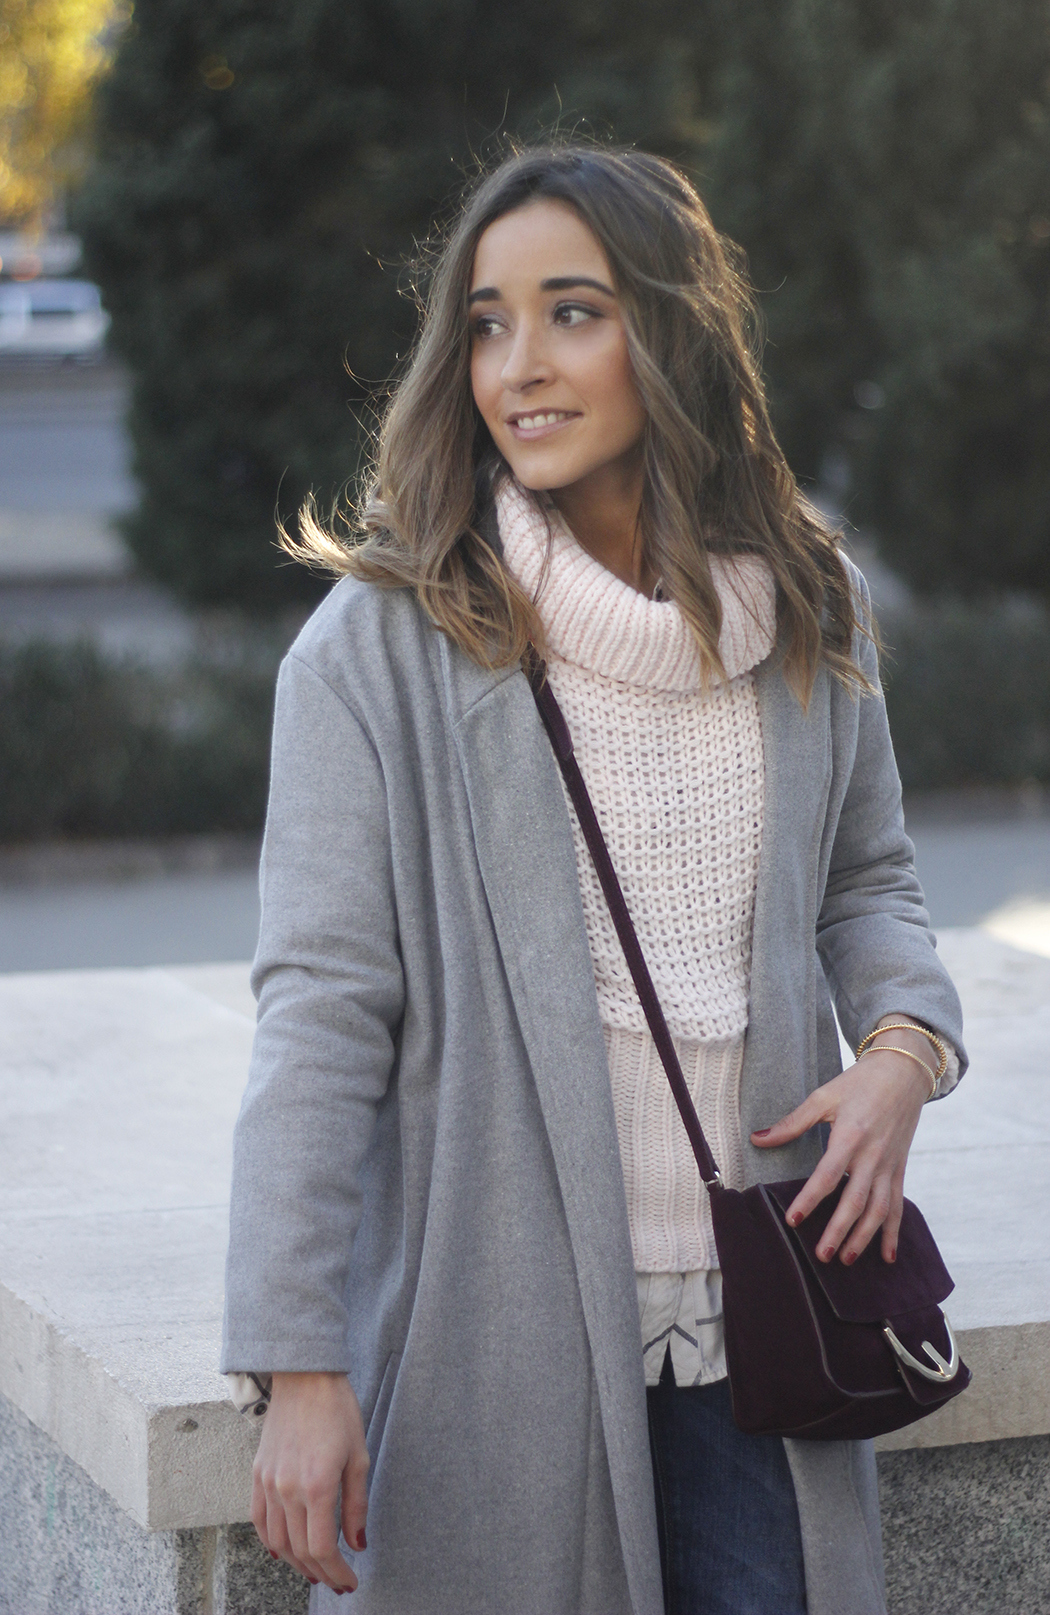 Grey coat with pink sweater jeans burgundy purse uterqüe outfit streetstyle02